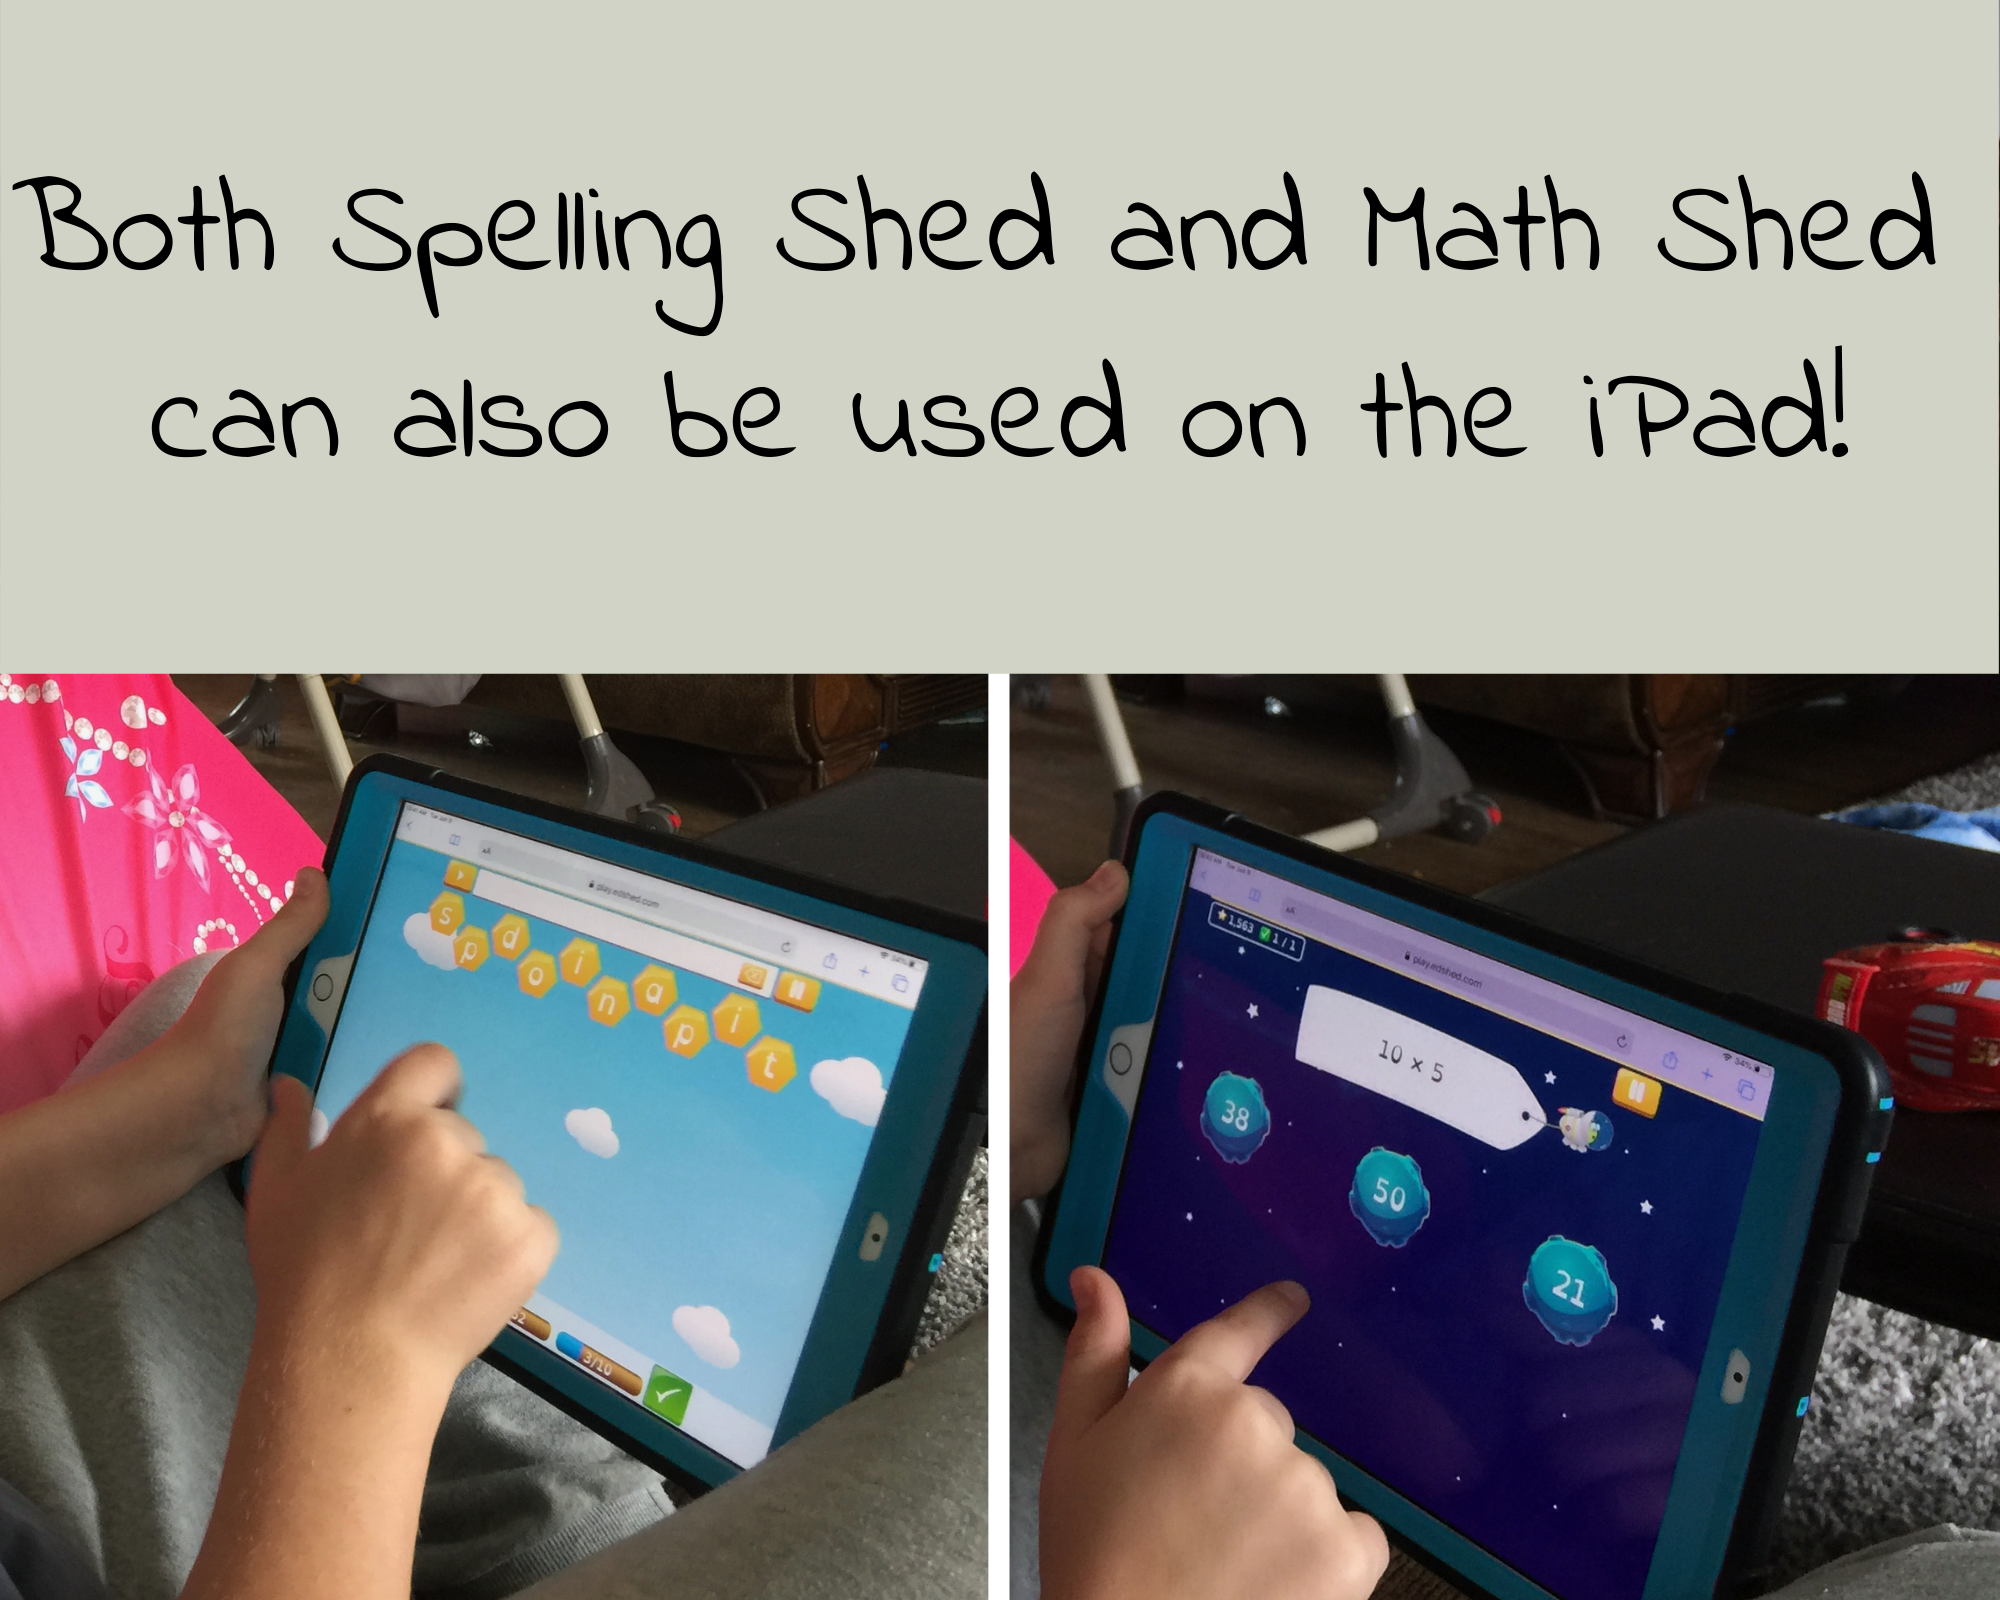 Both Spelling Shed and Math Shed can be used on the iPad!